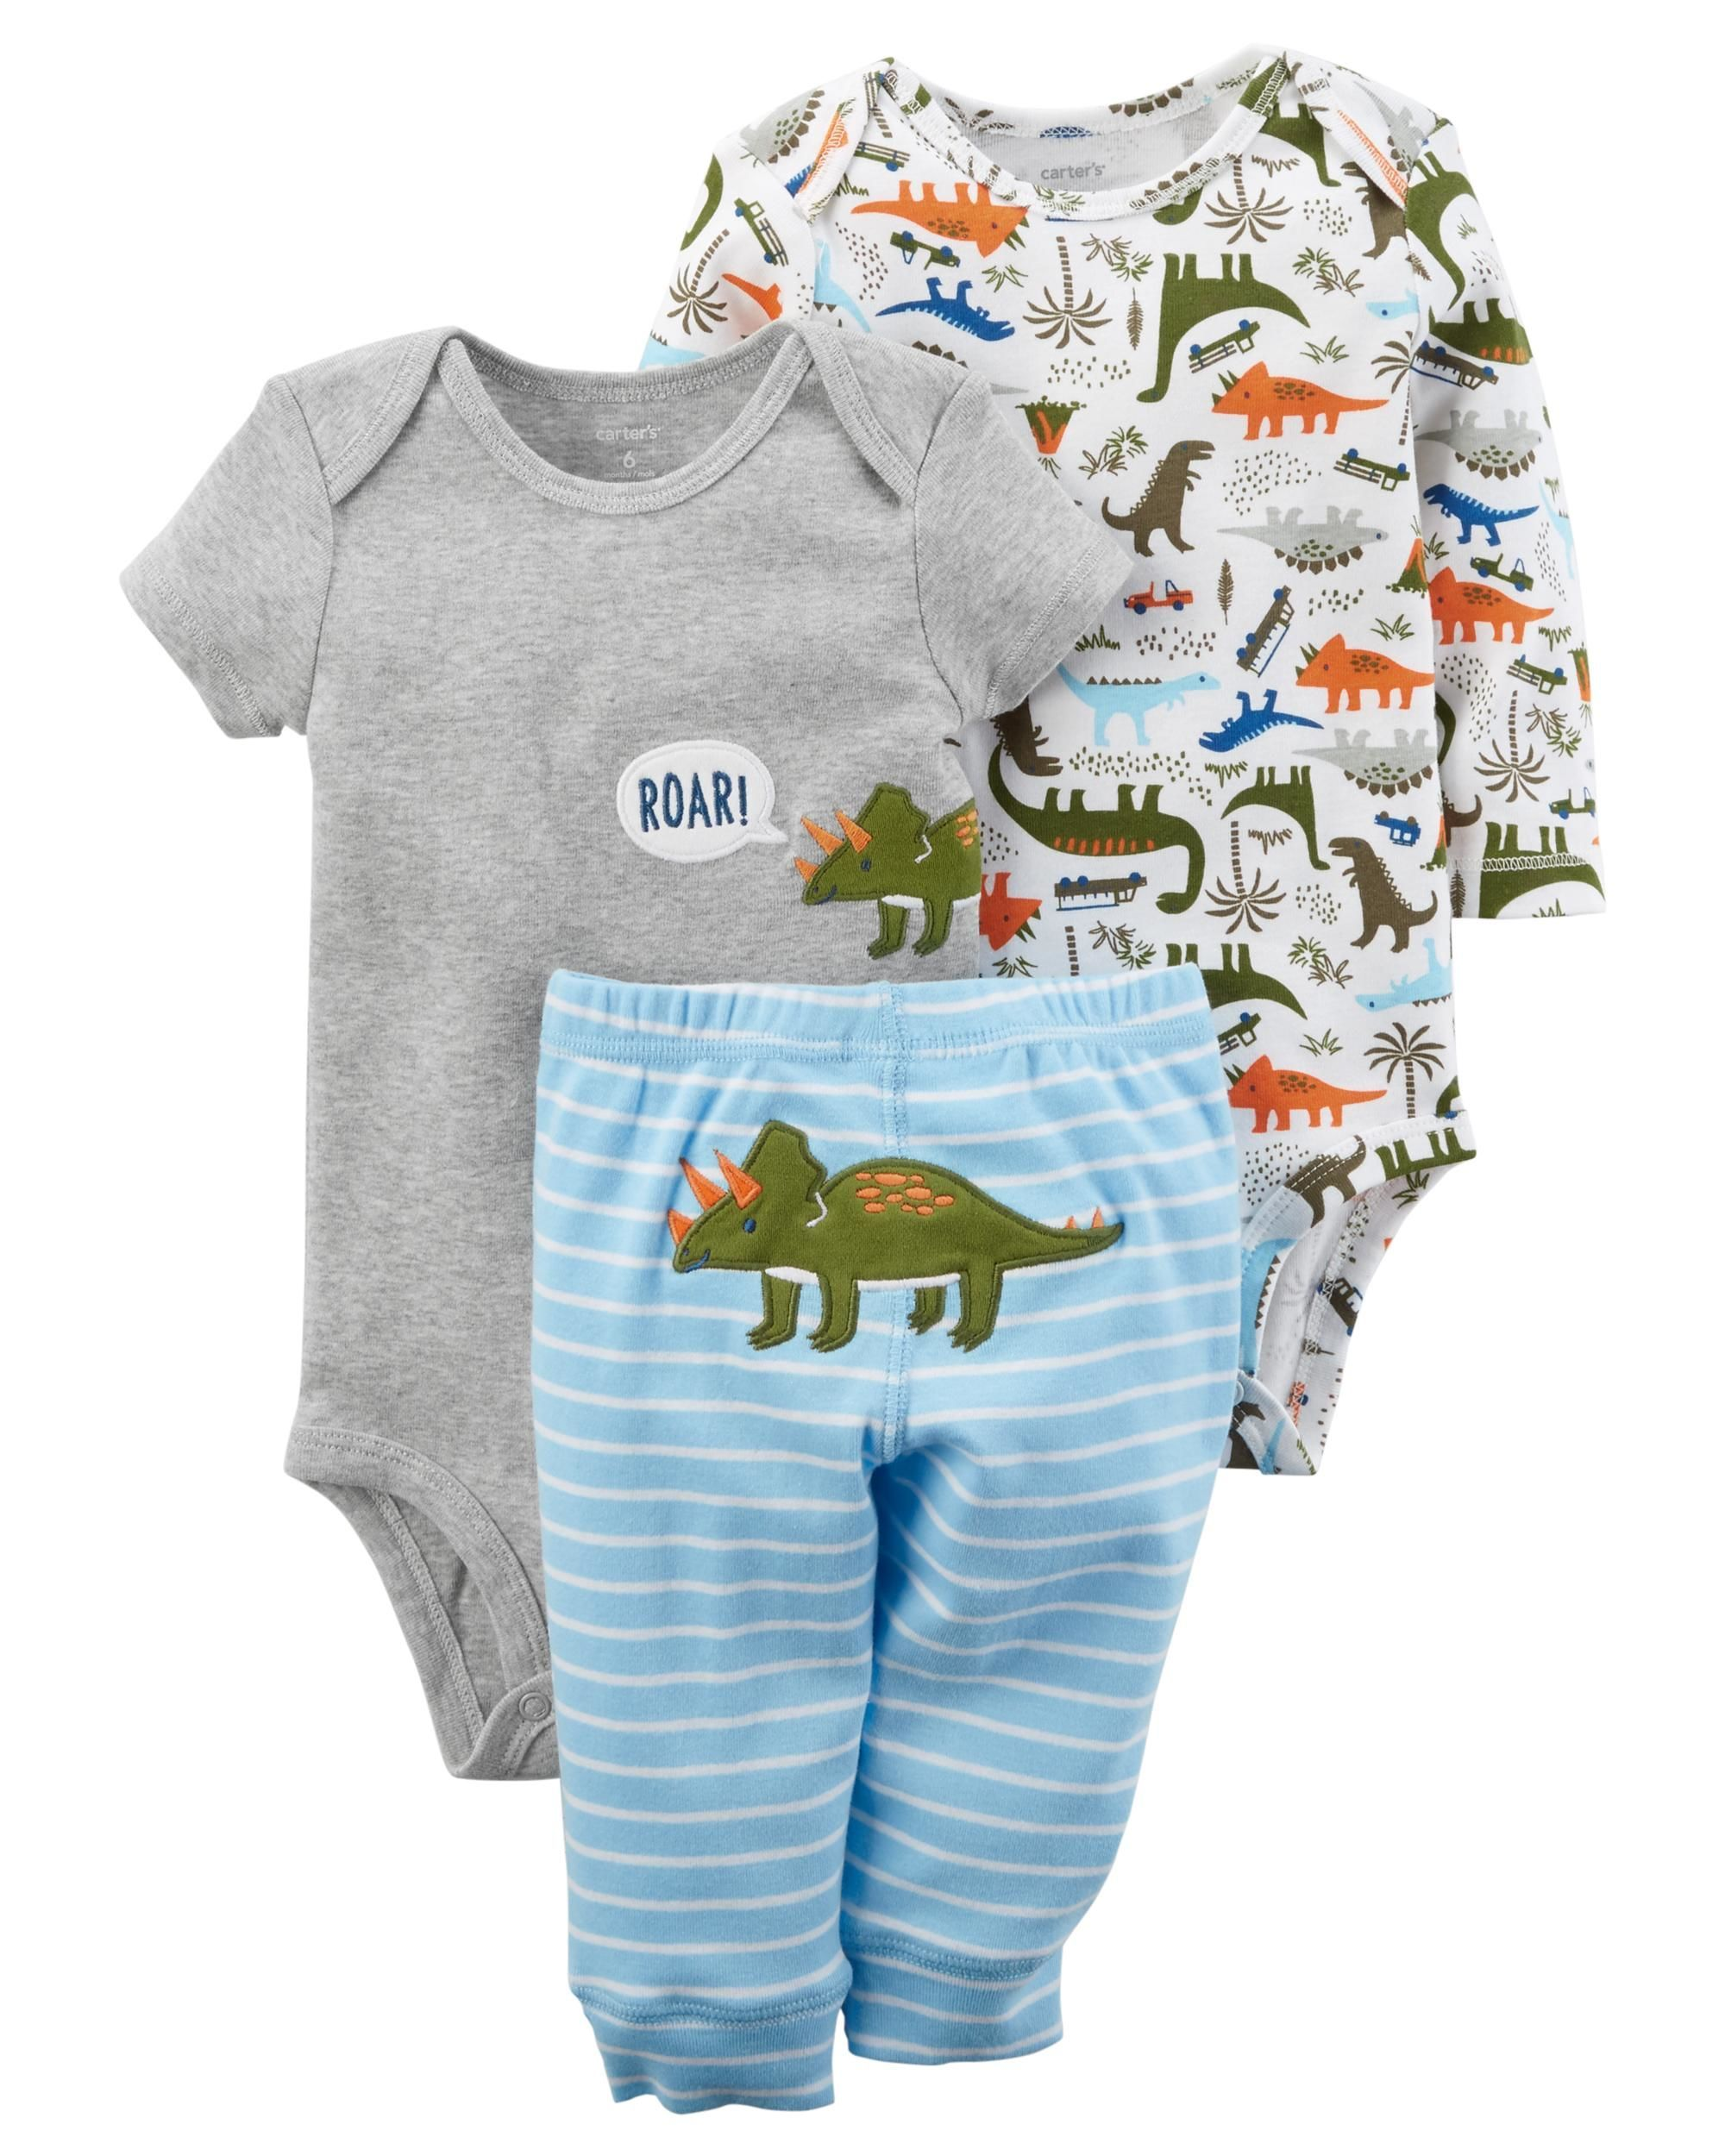 b7a65ef80 Mix and match with this 3-piece dinosaur set. Featuring two printed  bodysuits and coordinating pants, this set will have all eyes on him!